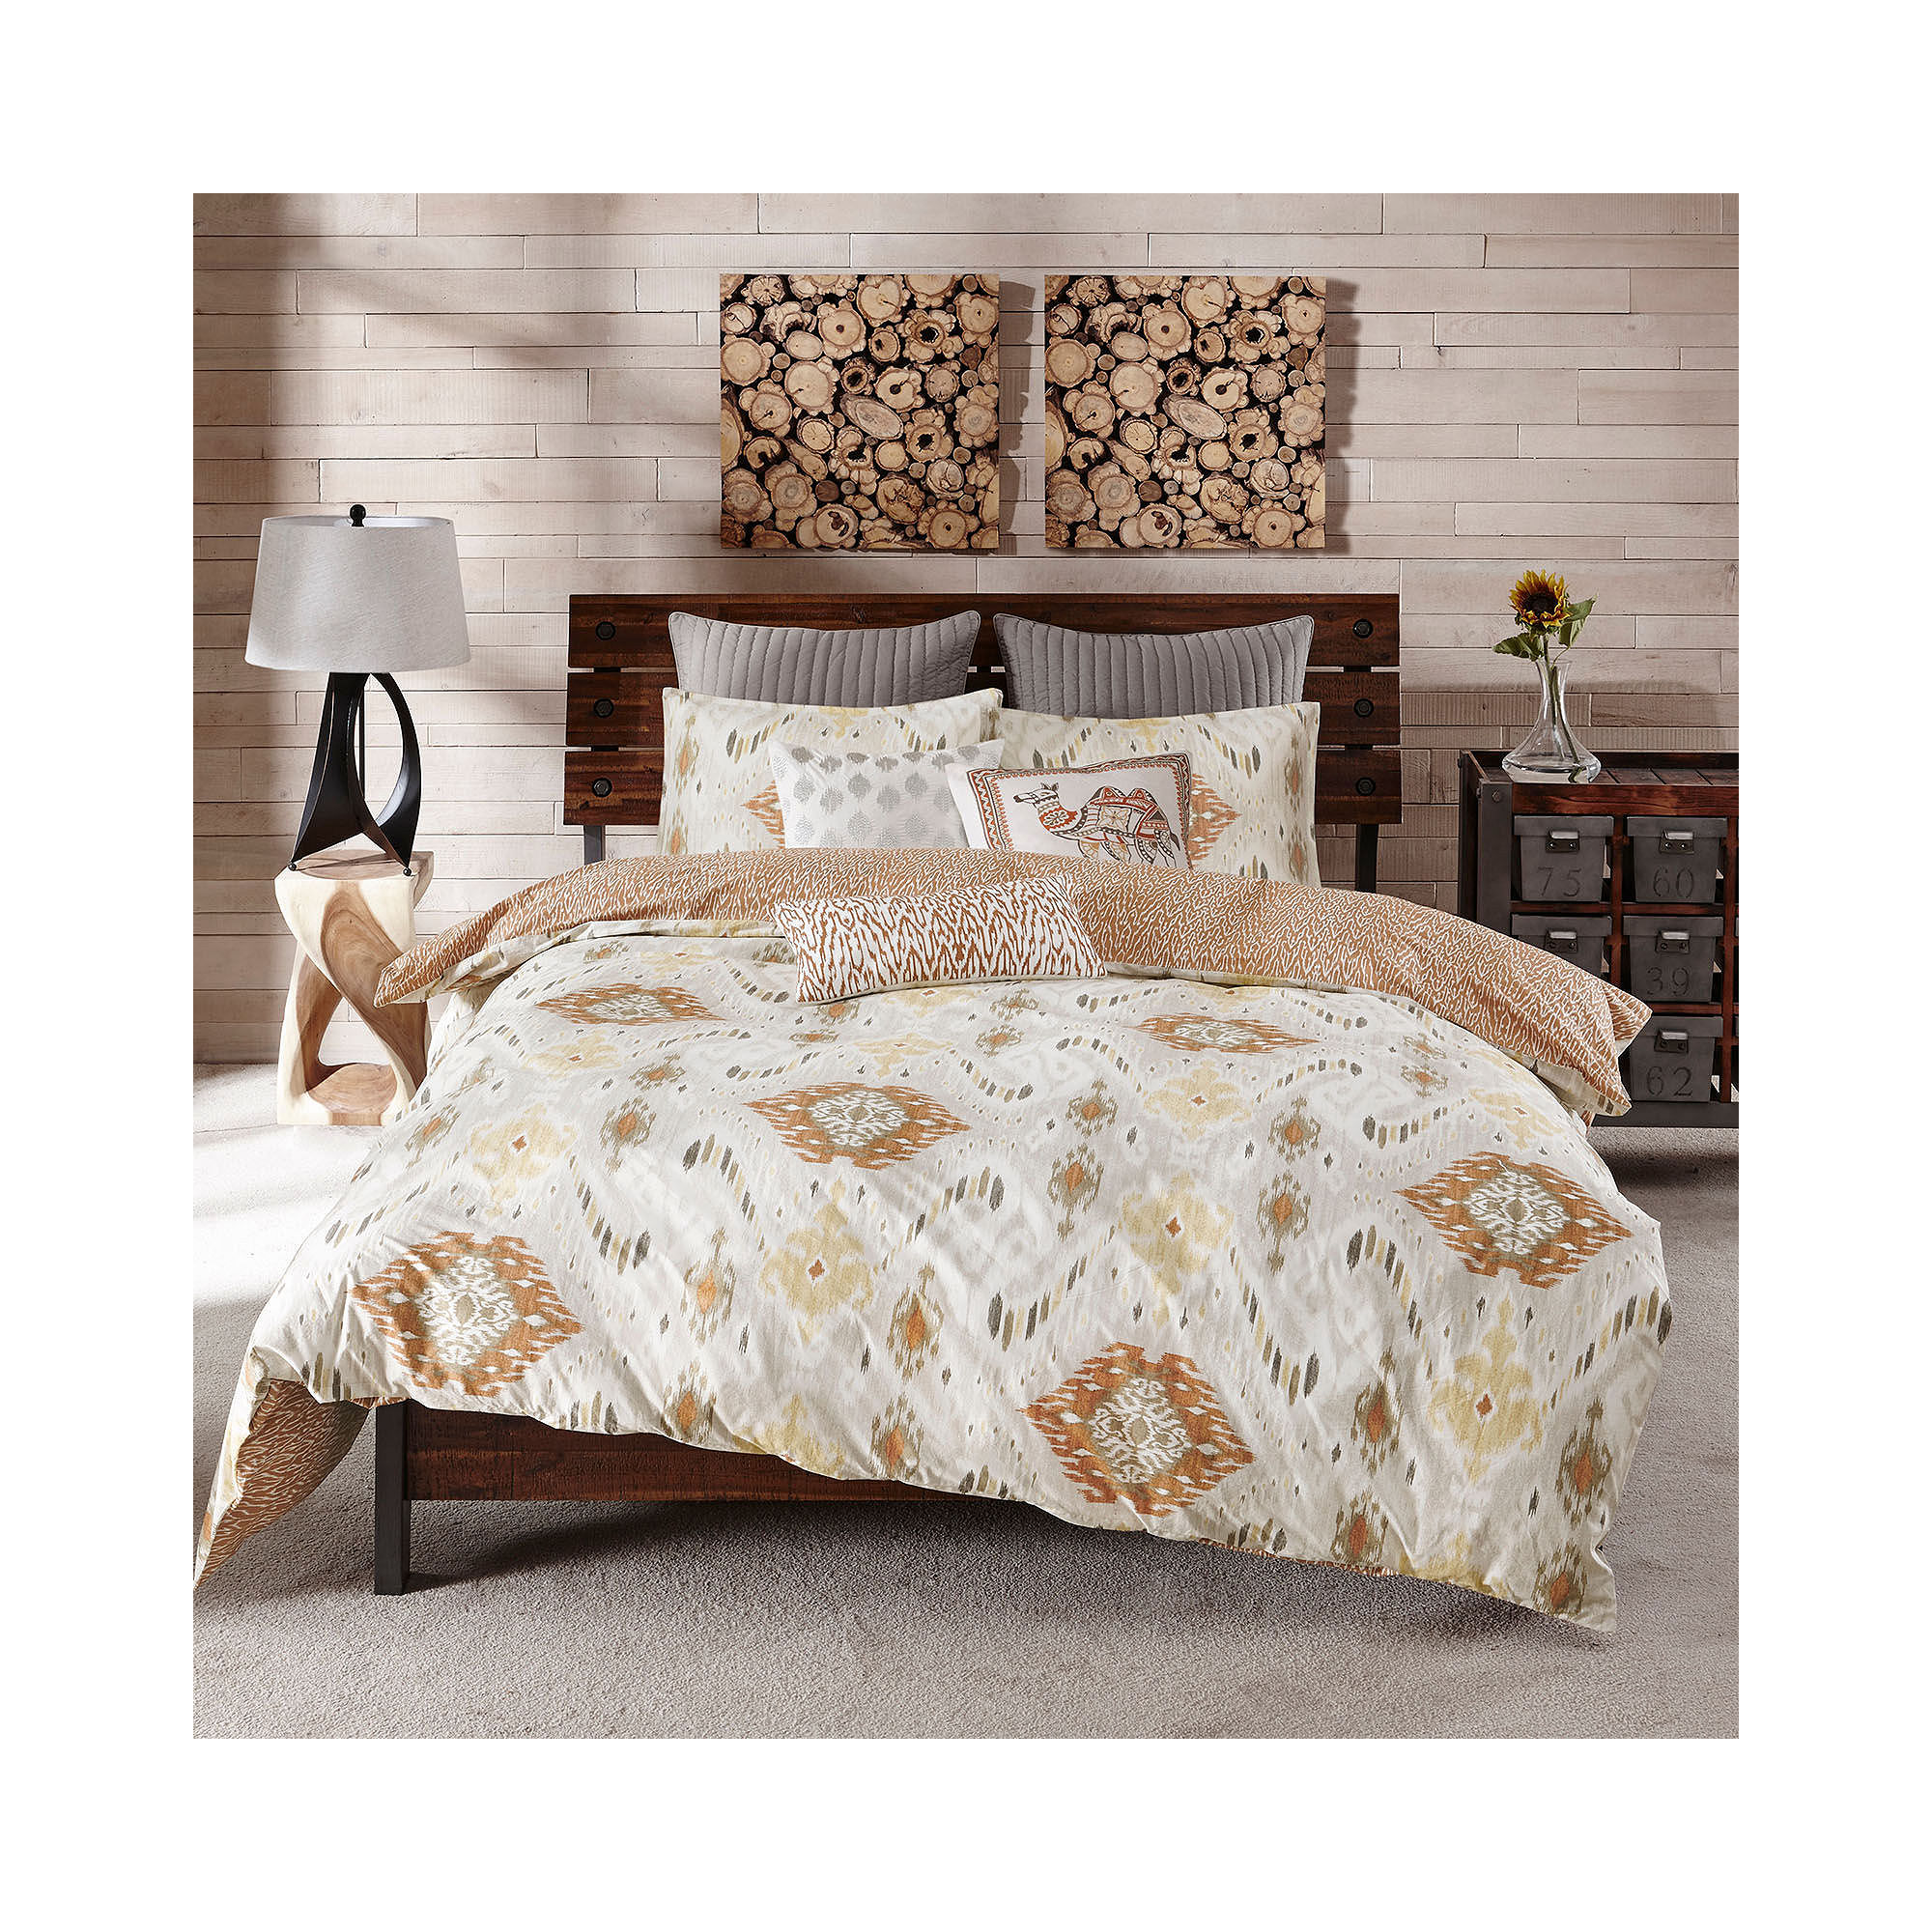 INK+IVY Nia 3-pc. Comforter Mini Set